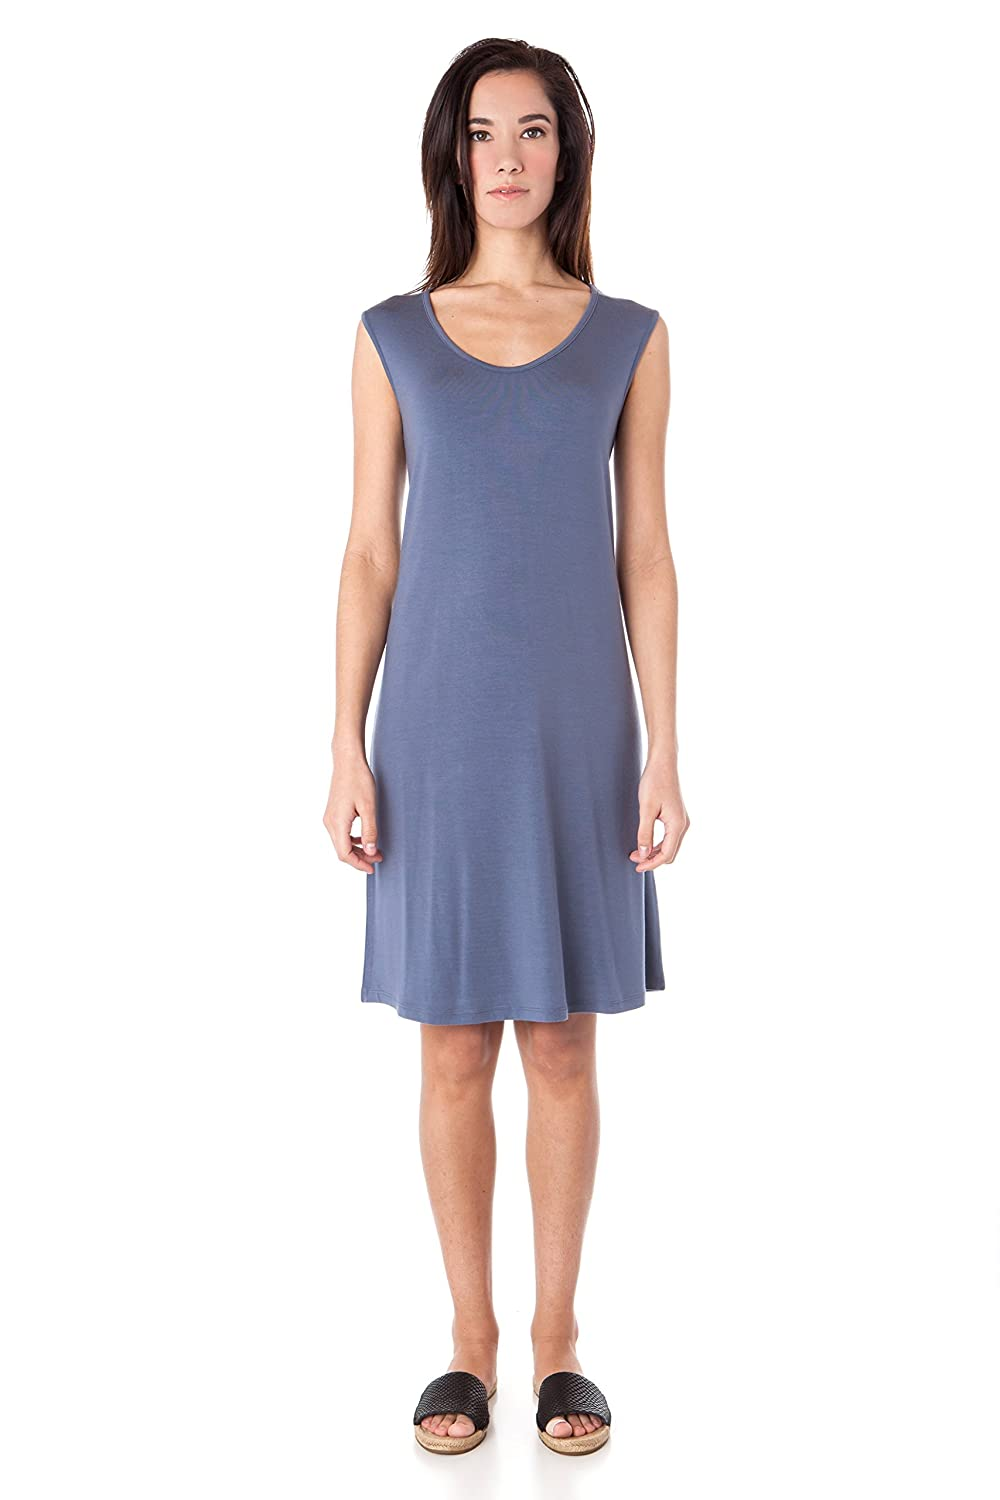 A to Z Modal Sleeveless Dress DD-170